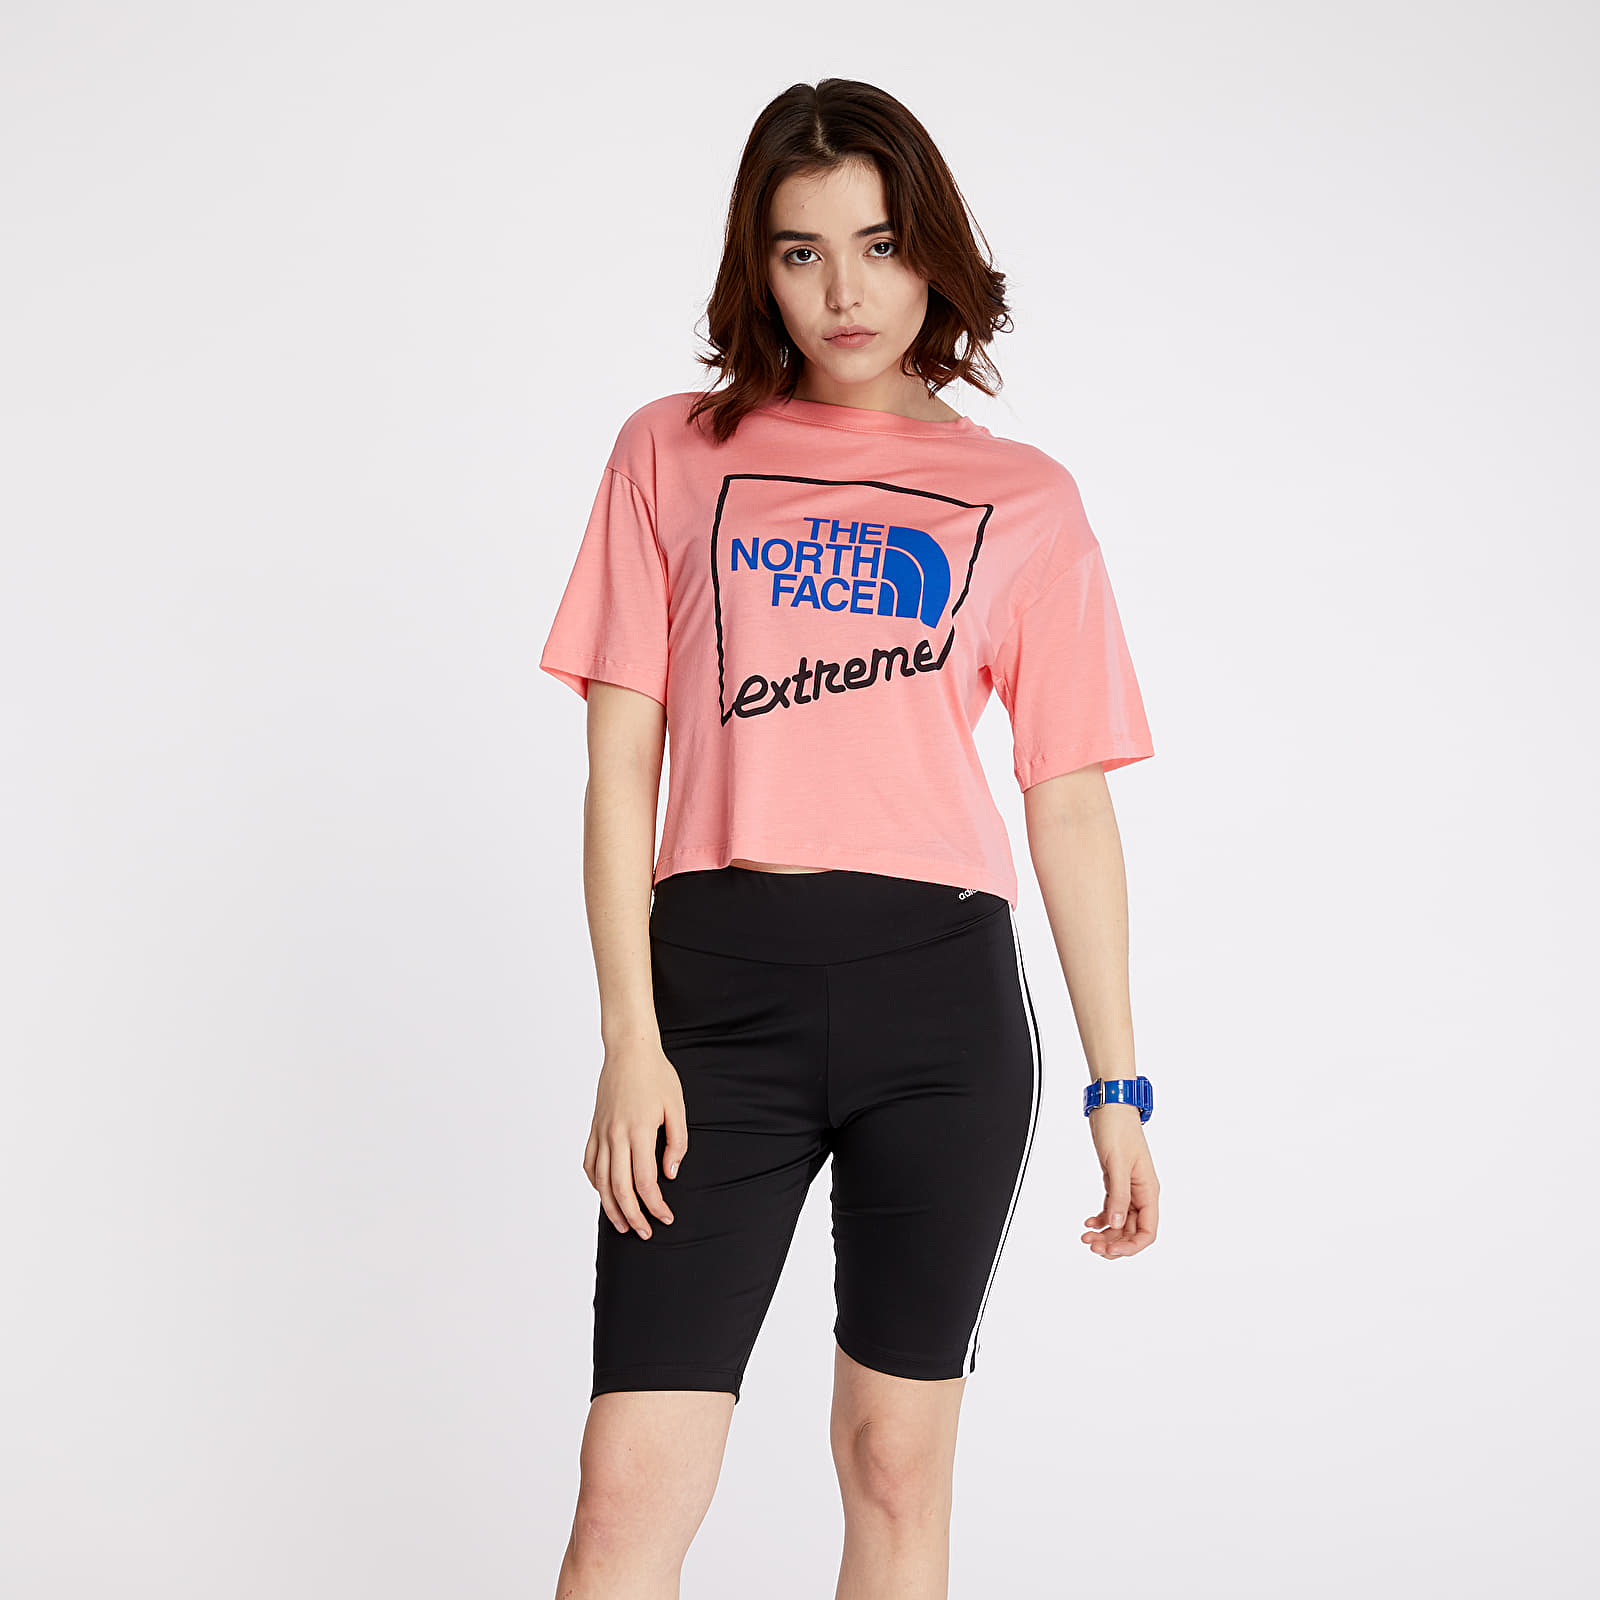 The North Face Extreme Crop Tee